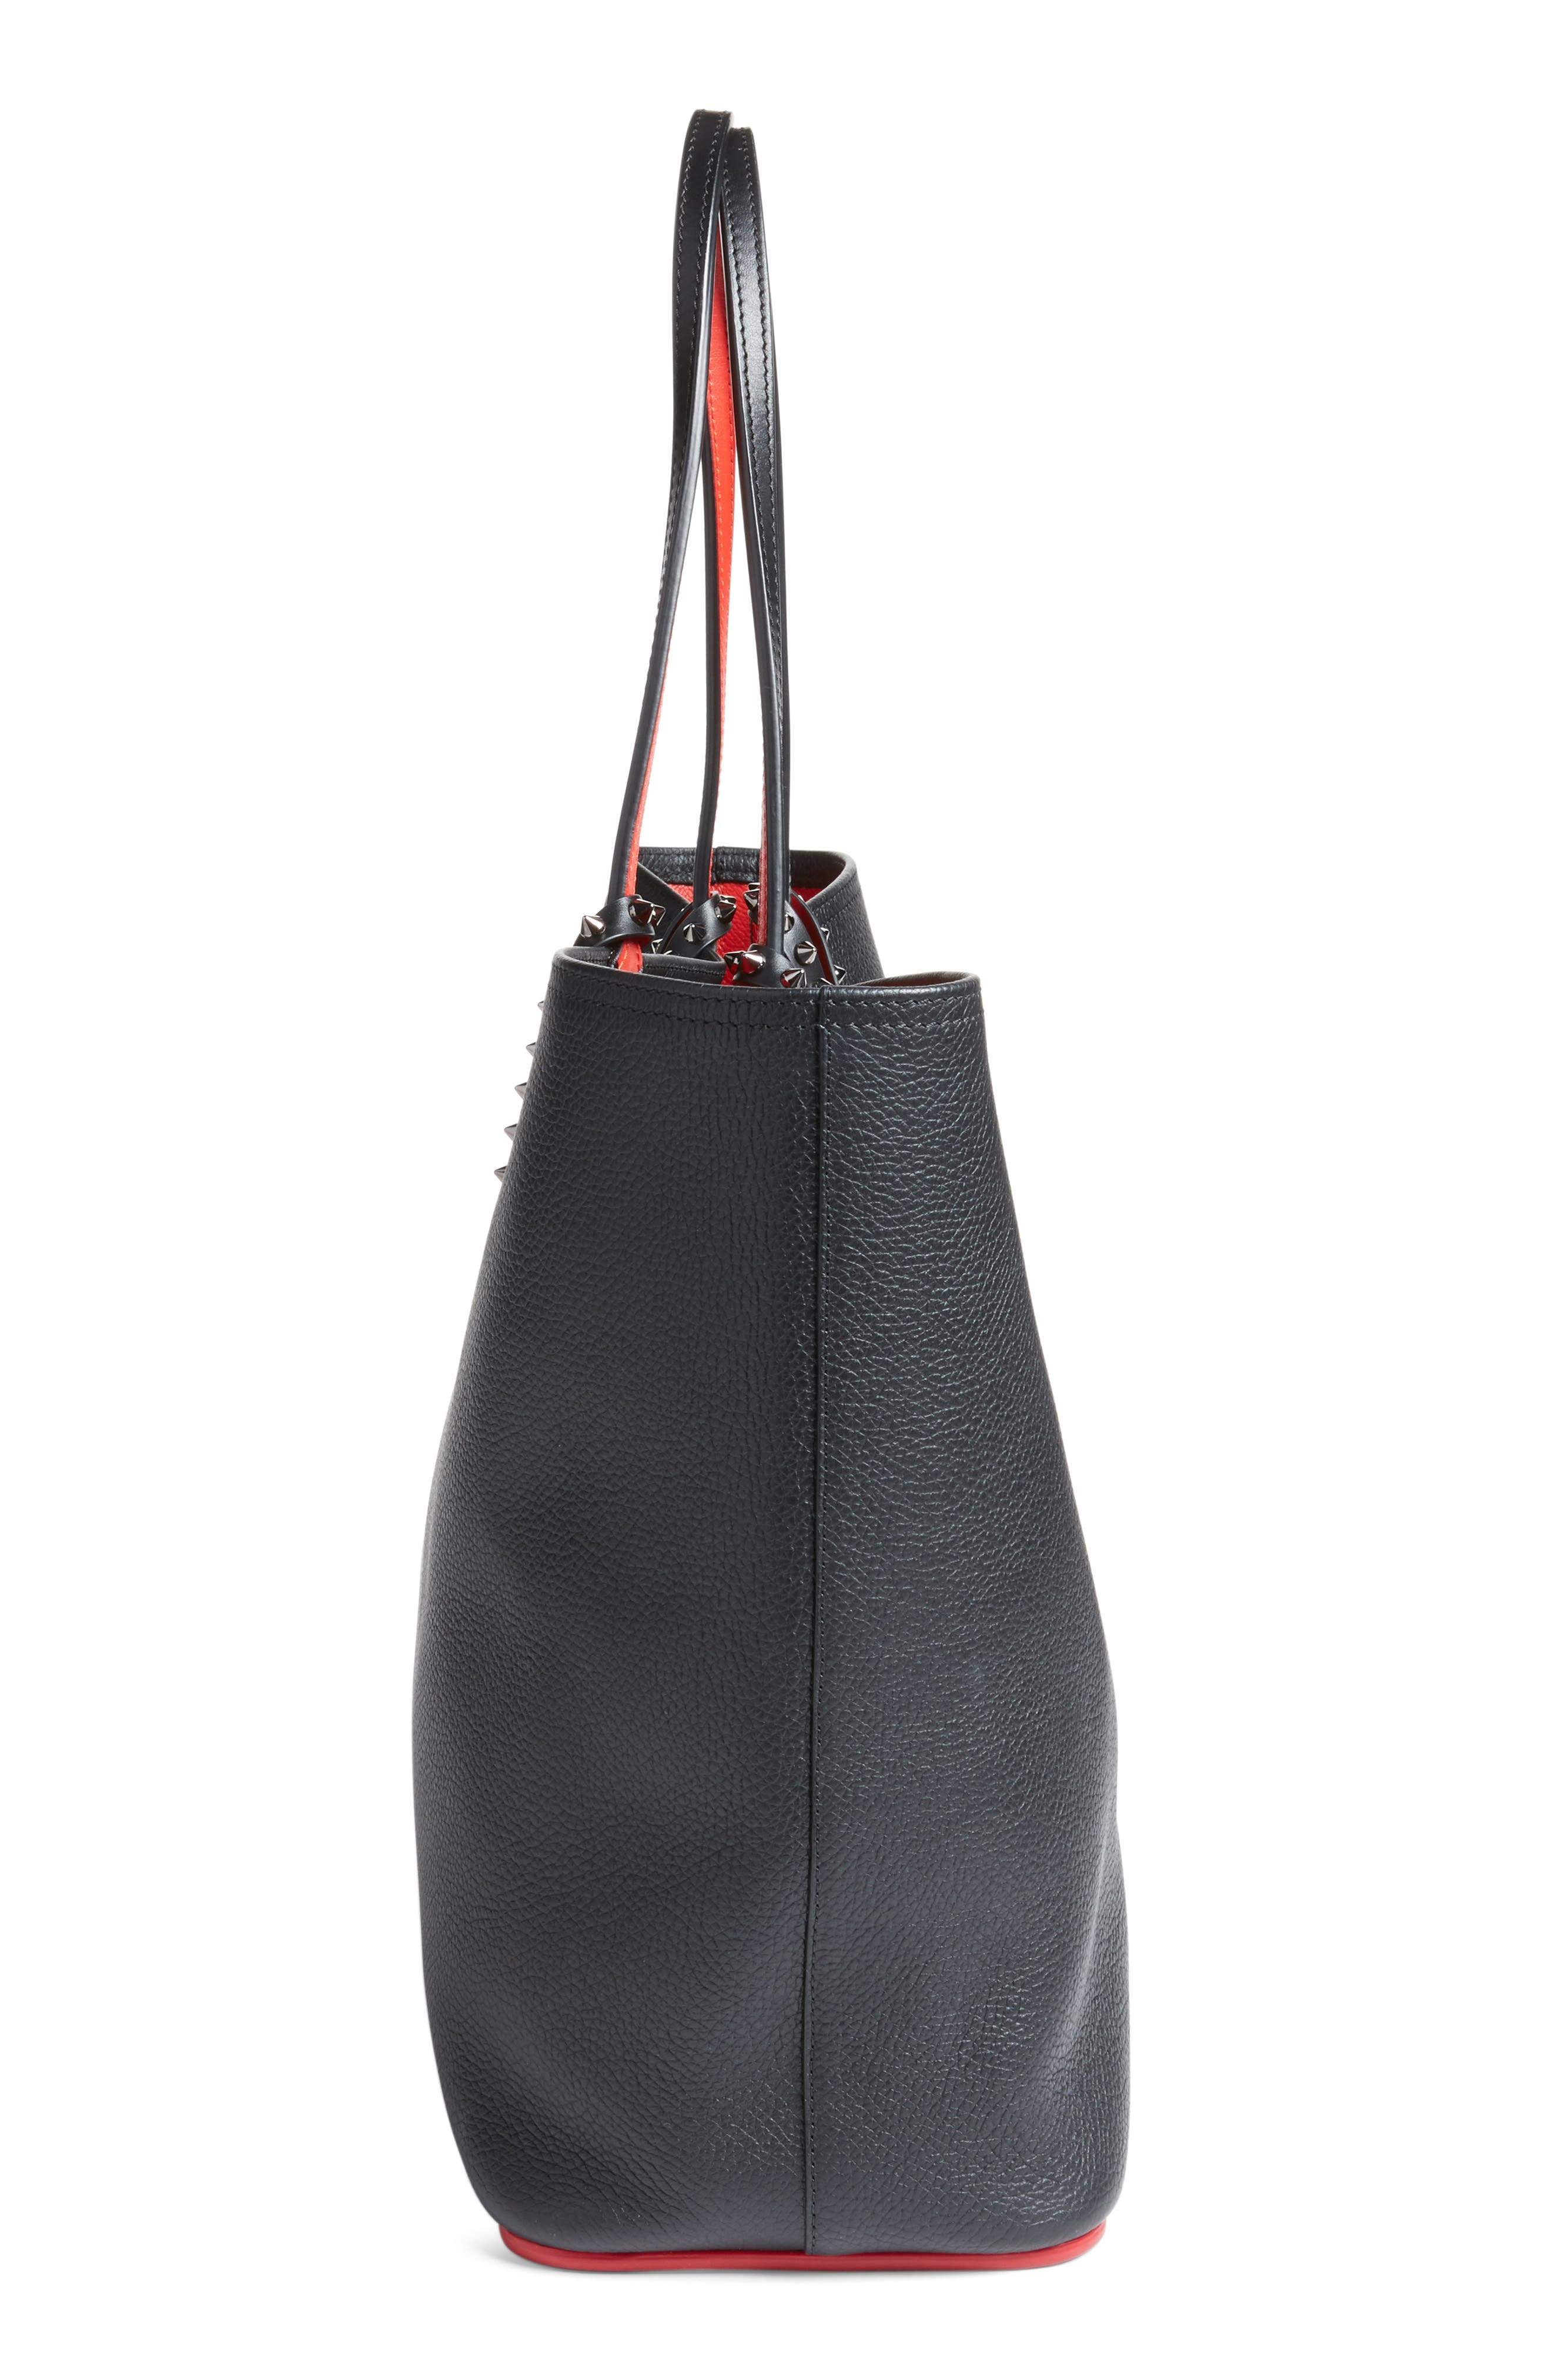 Cabata Calfskin Leather Tote,                             Alternate thumbnail 5, color,                             Black/Black